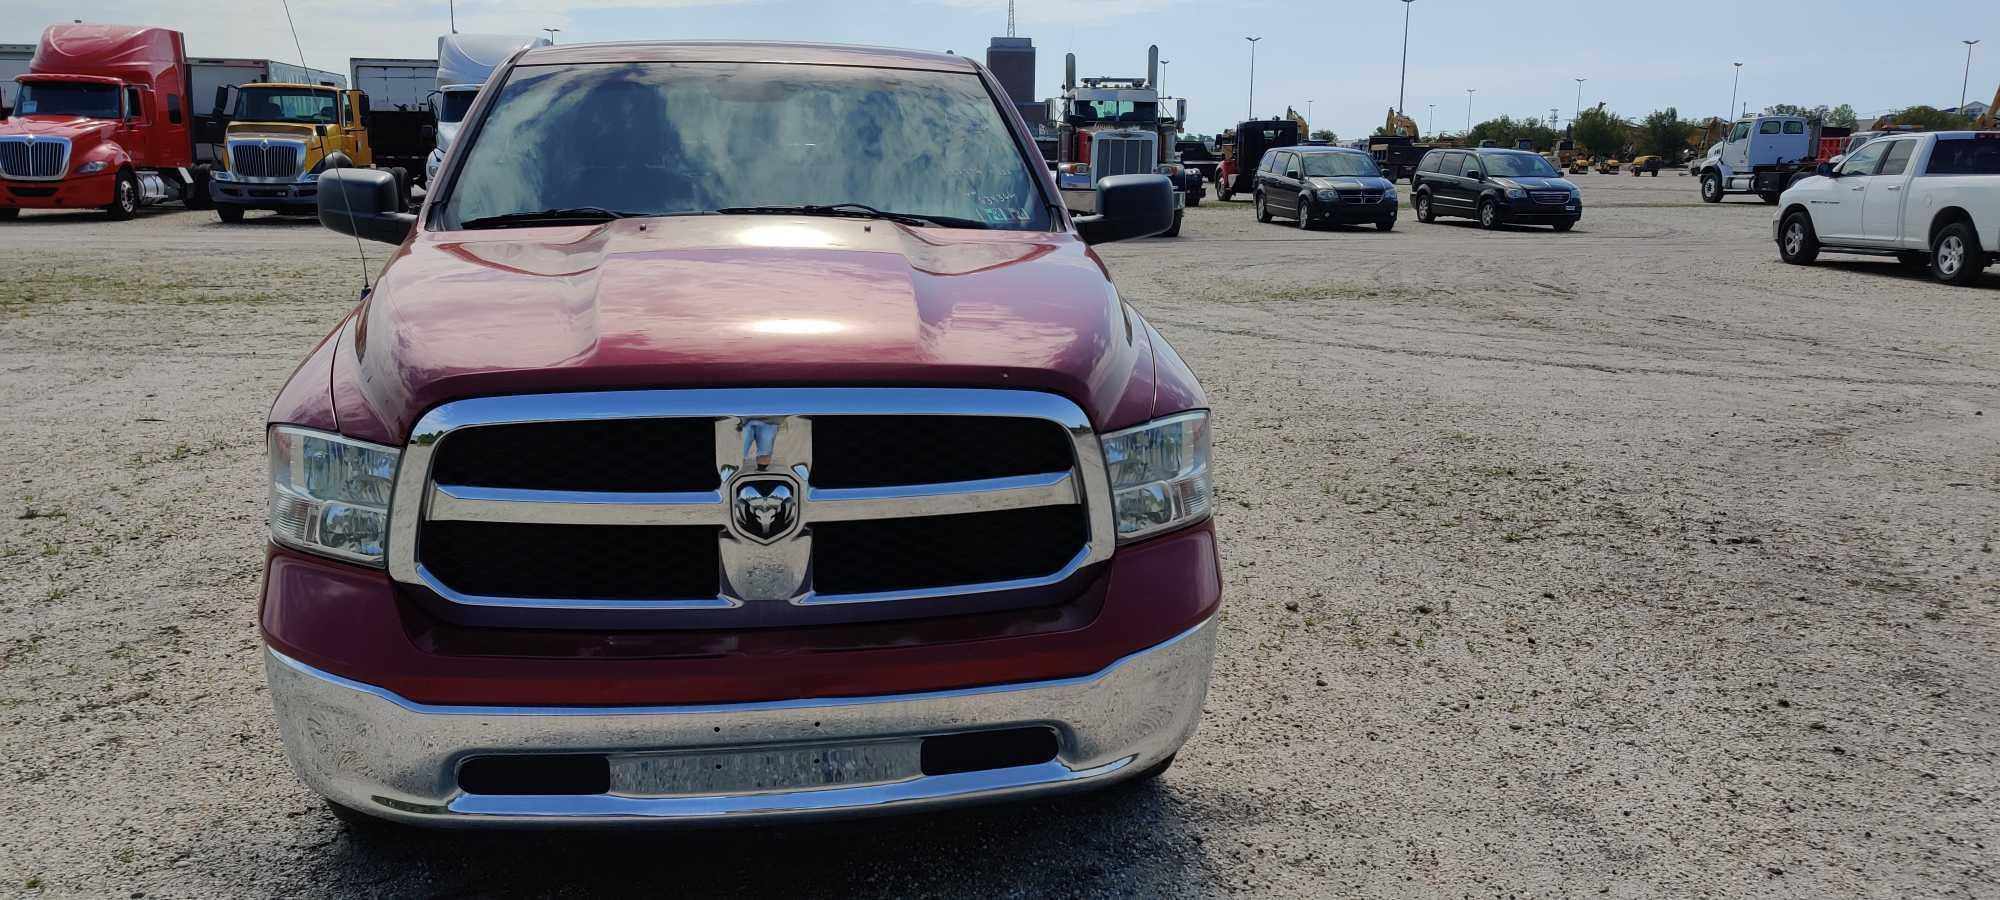 2013 DODGE 1500 PICKUP TRUCK VN:634366 4x4 Powered By